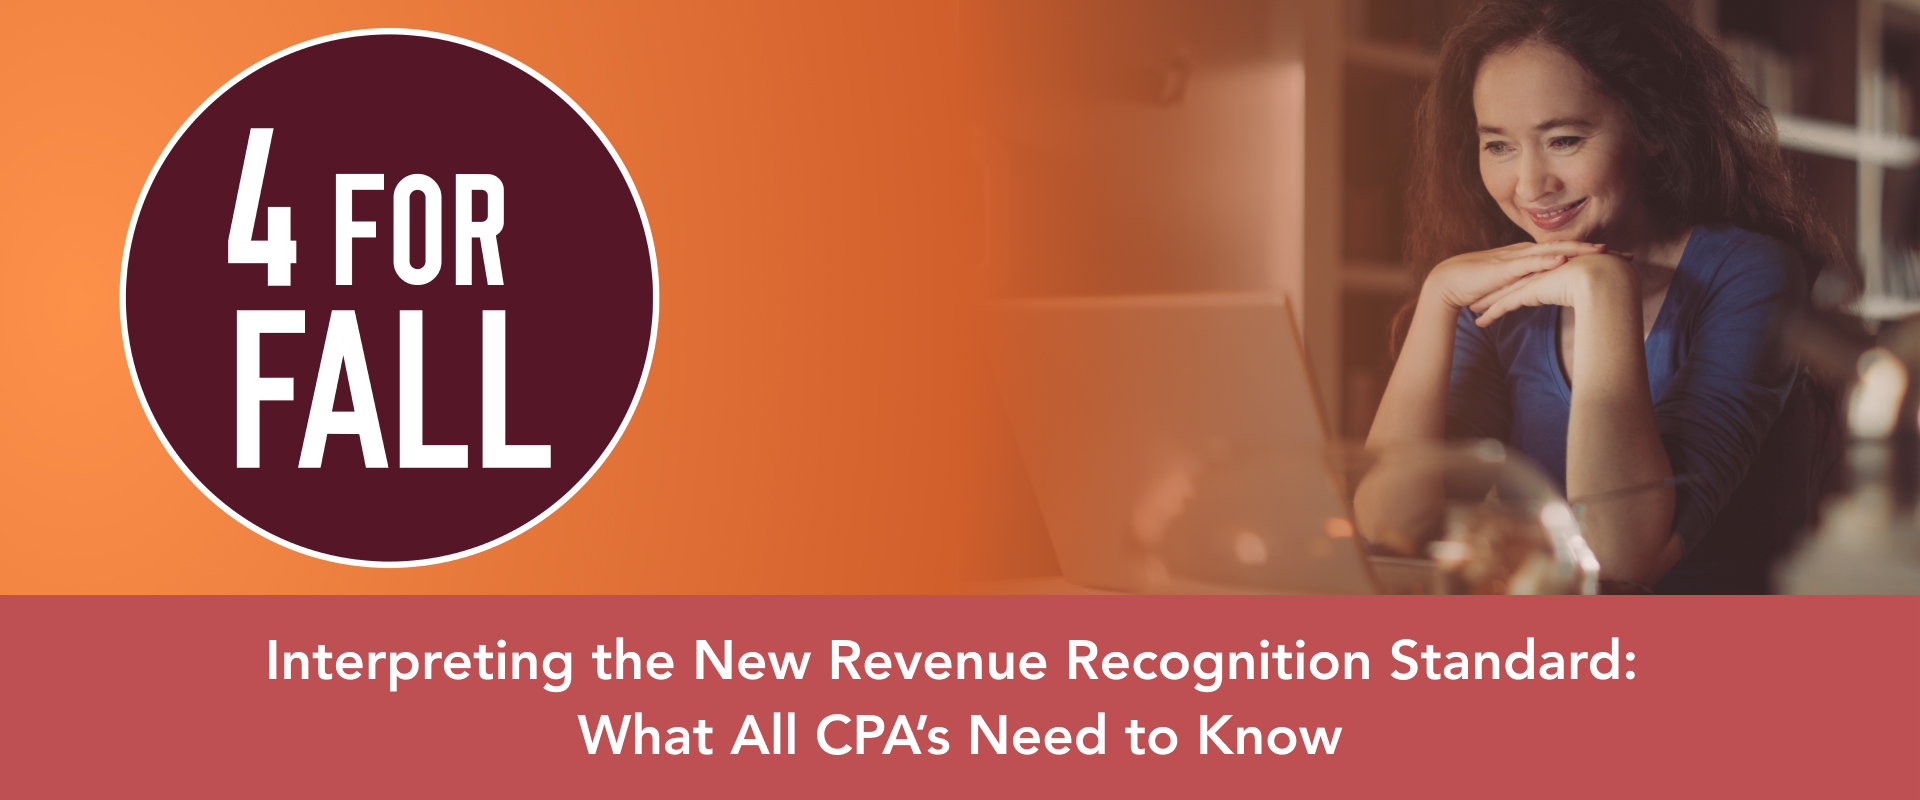 Four for Fall: Interpreting the New Revenue Recognition Standard: What All CPA's Need to Know